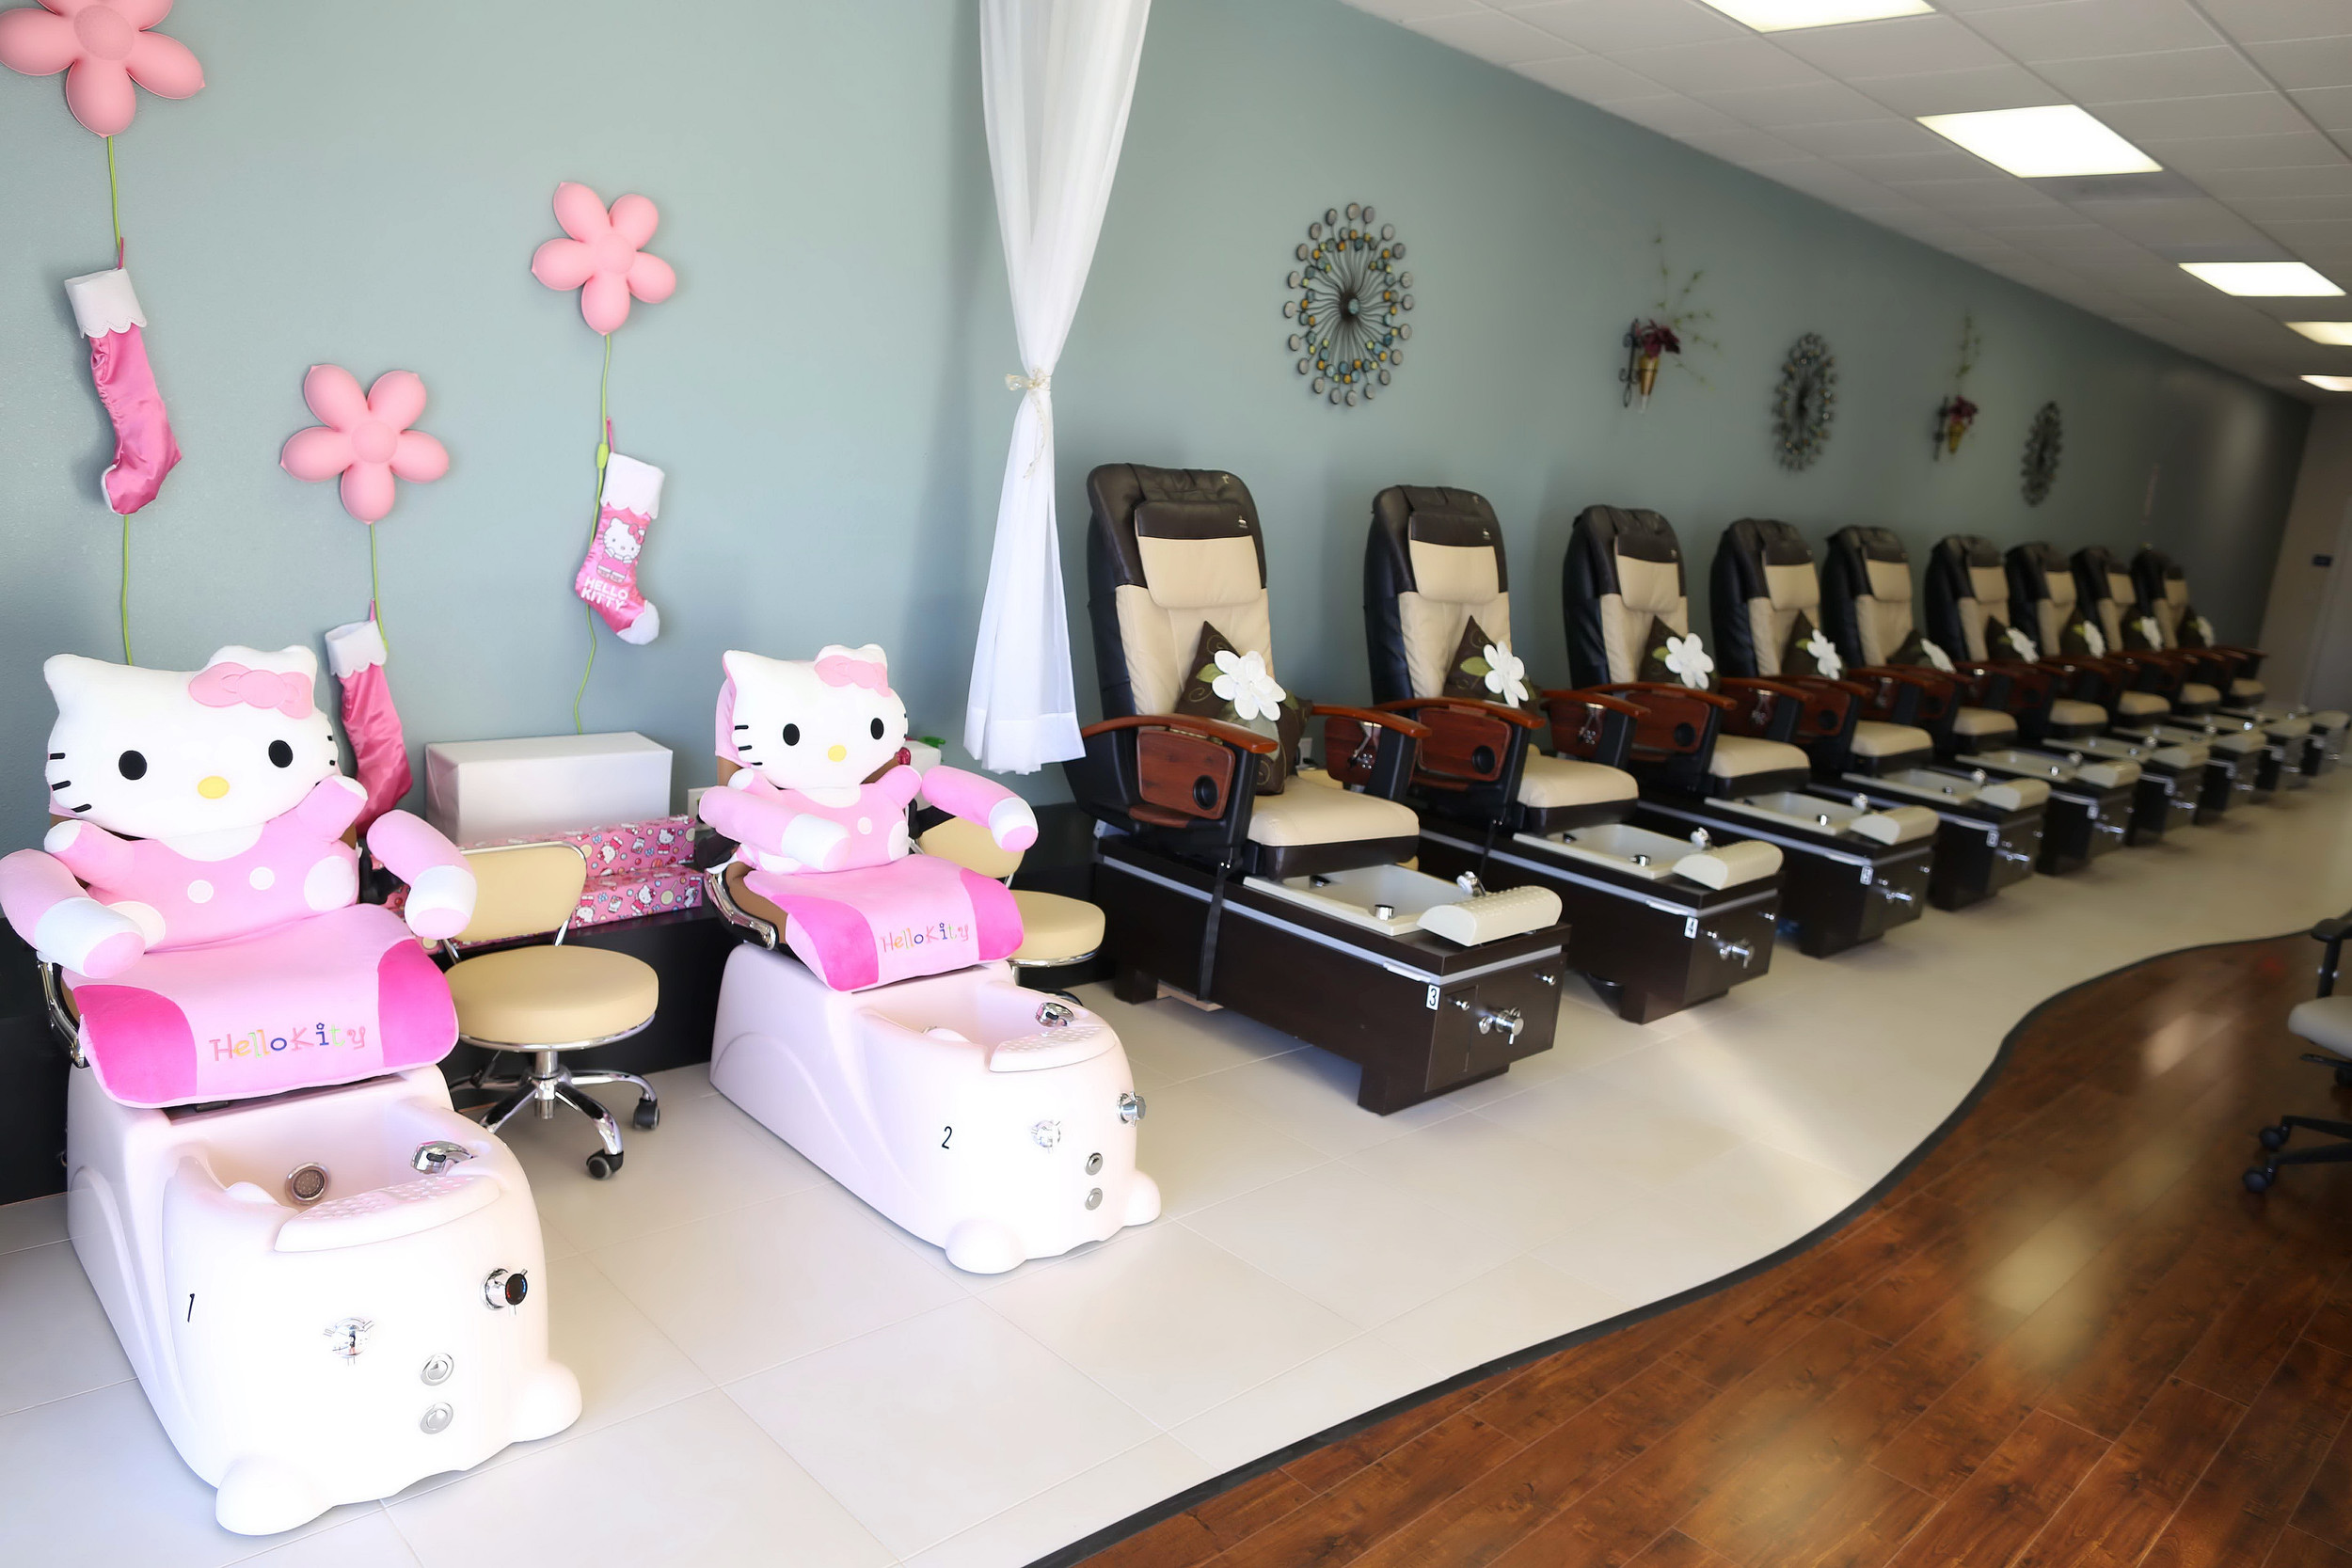 little girl chairs desk chair tall princess treatments perfect 10 nail spa with our packages every has the chance to be pampered special hello kitty kid sized pedicure we re ready treat